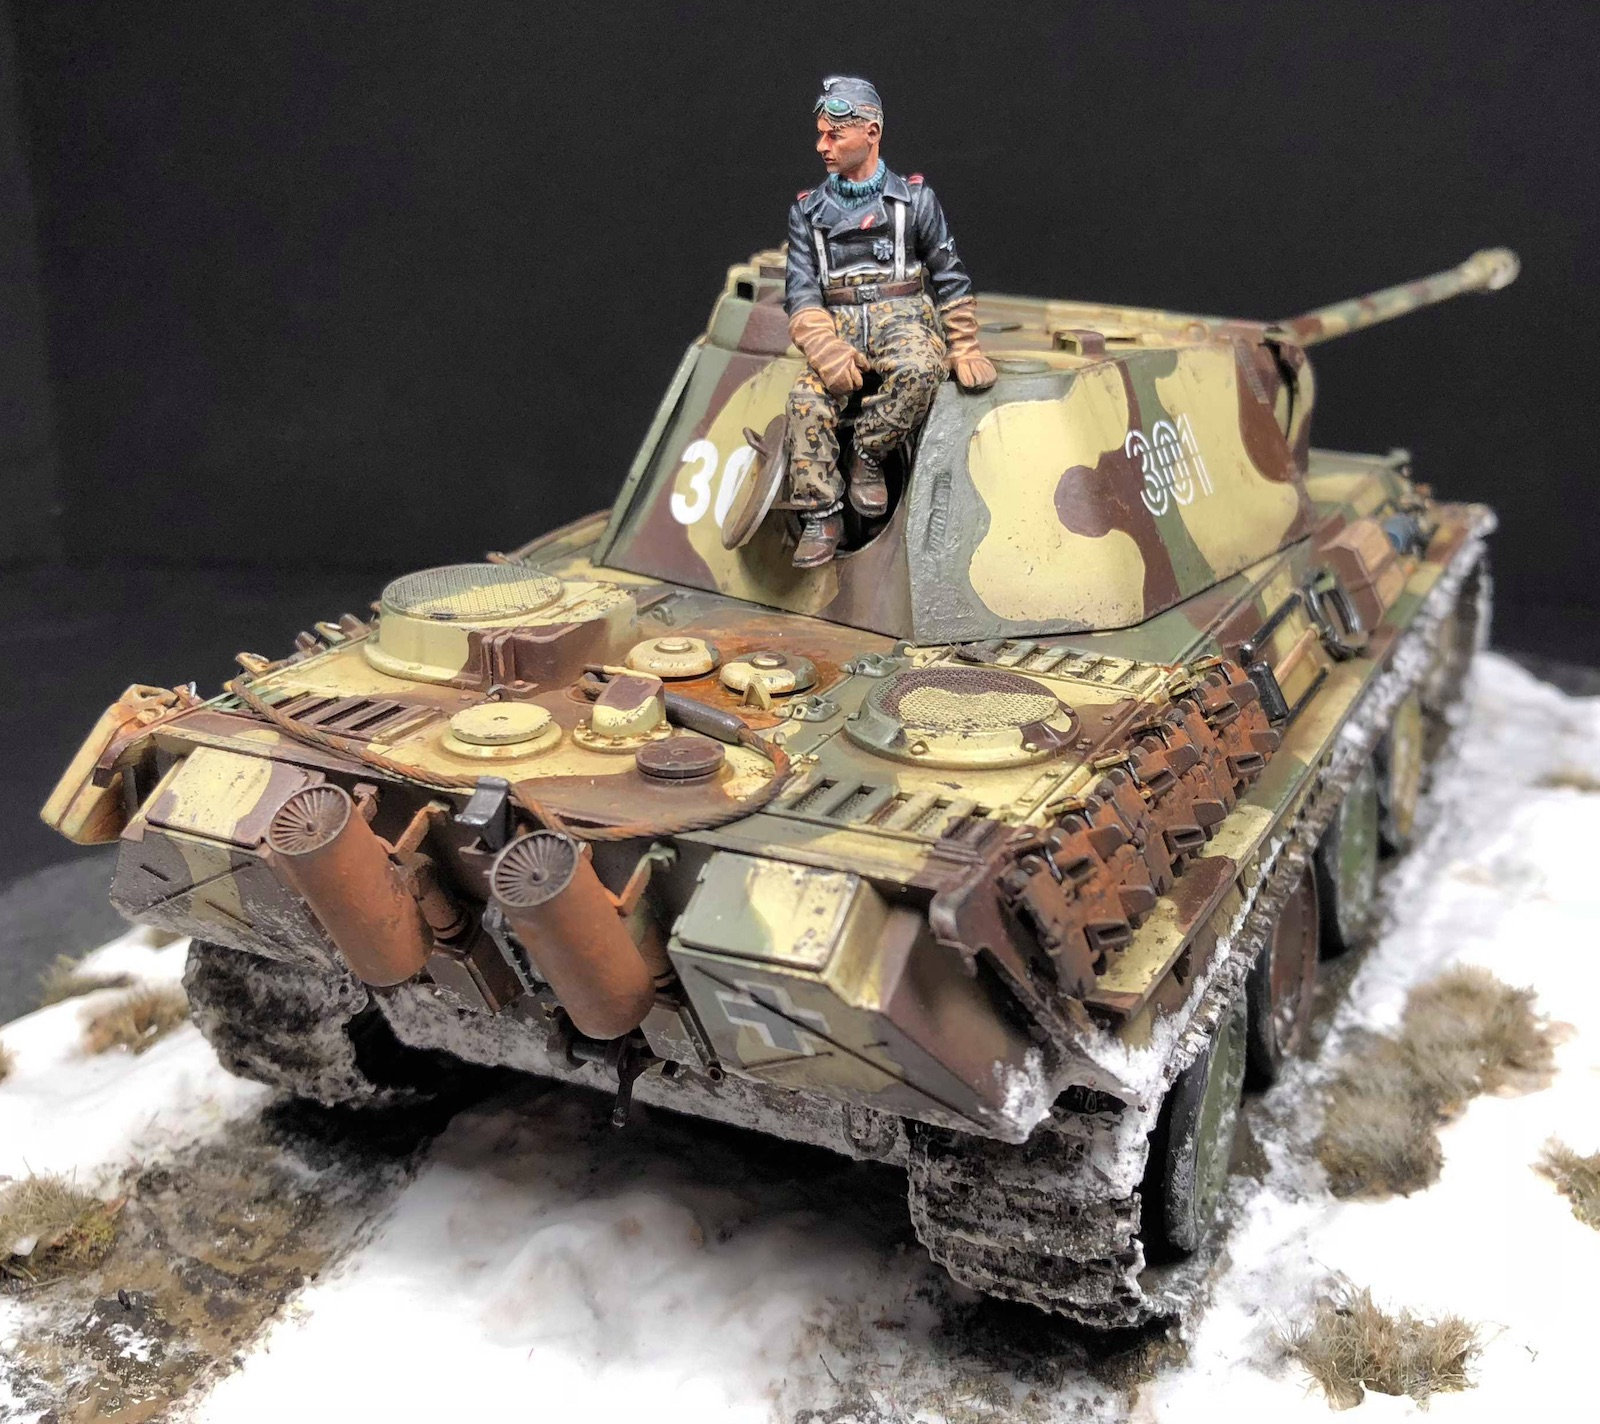 Panther G Tamiya 1/35 - Out of the Box - Page 2 9qle